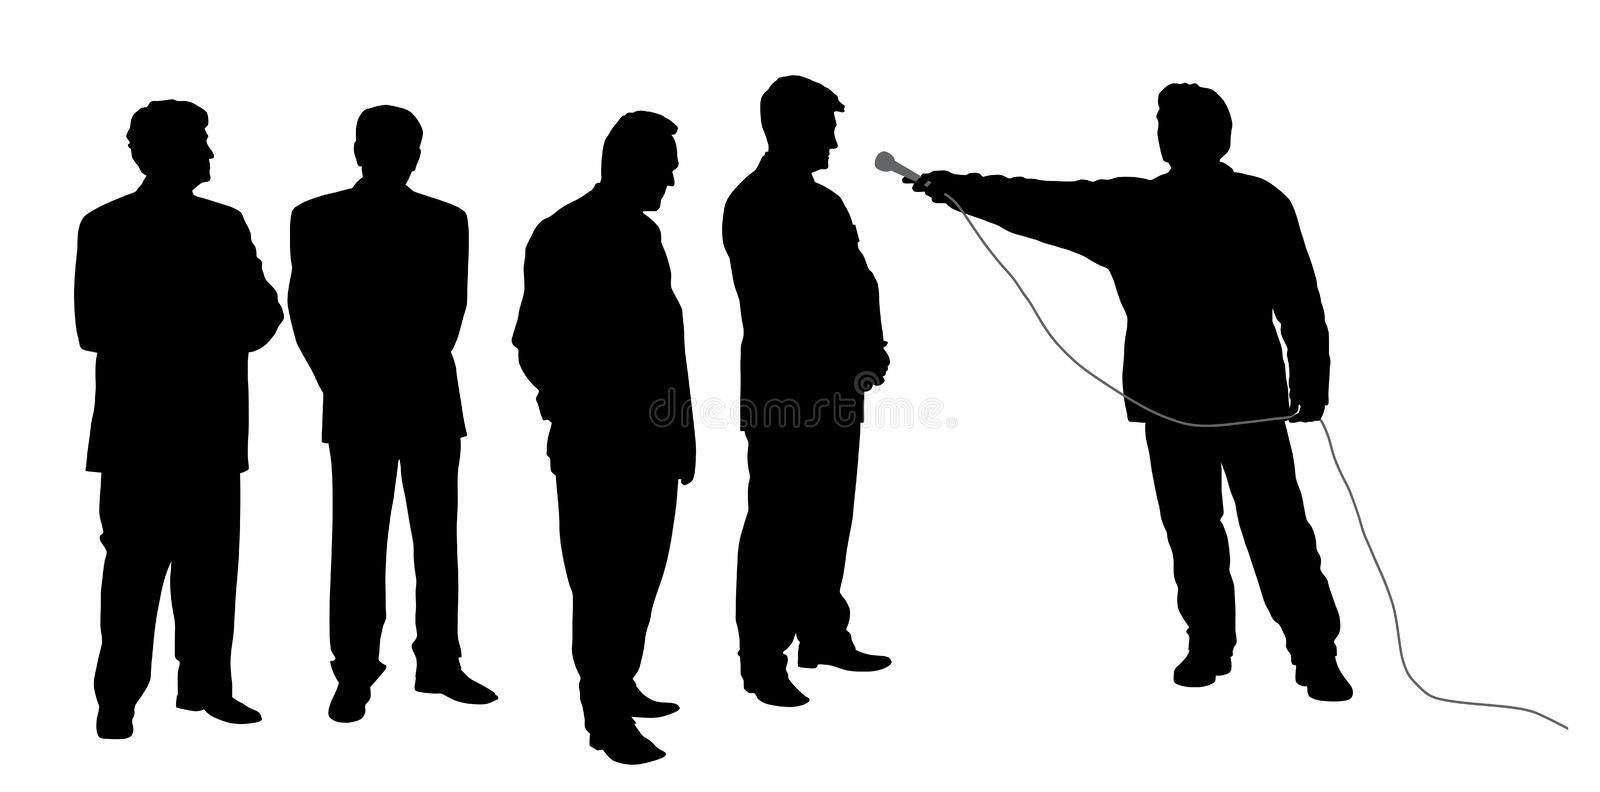 Interview with business group royalty free illustration